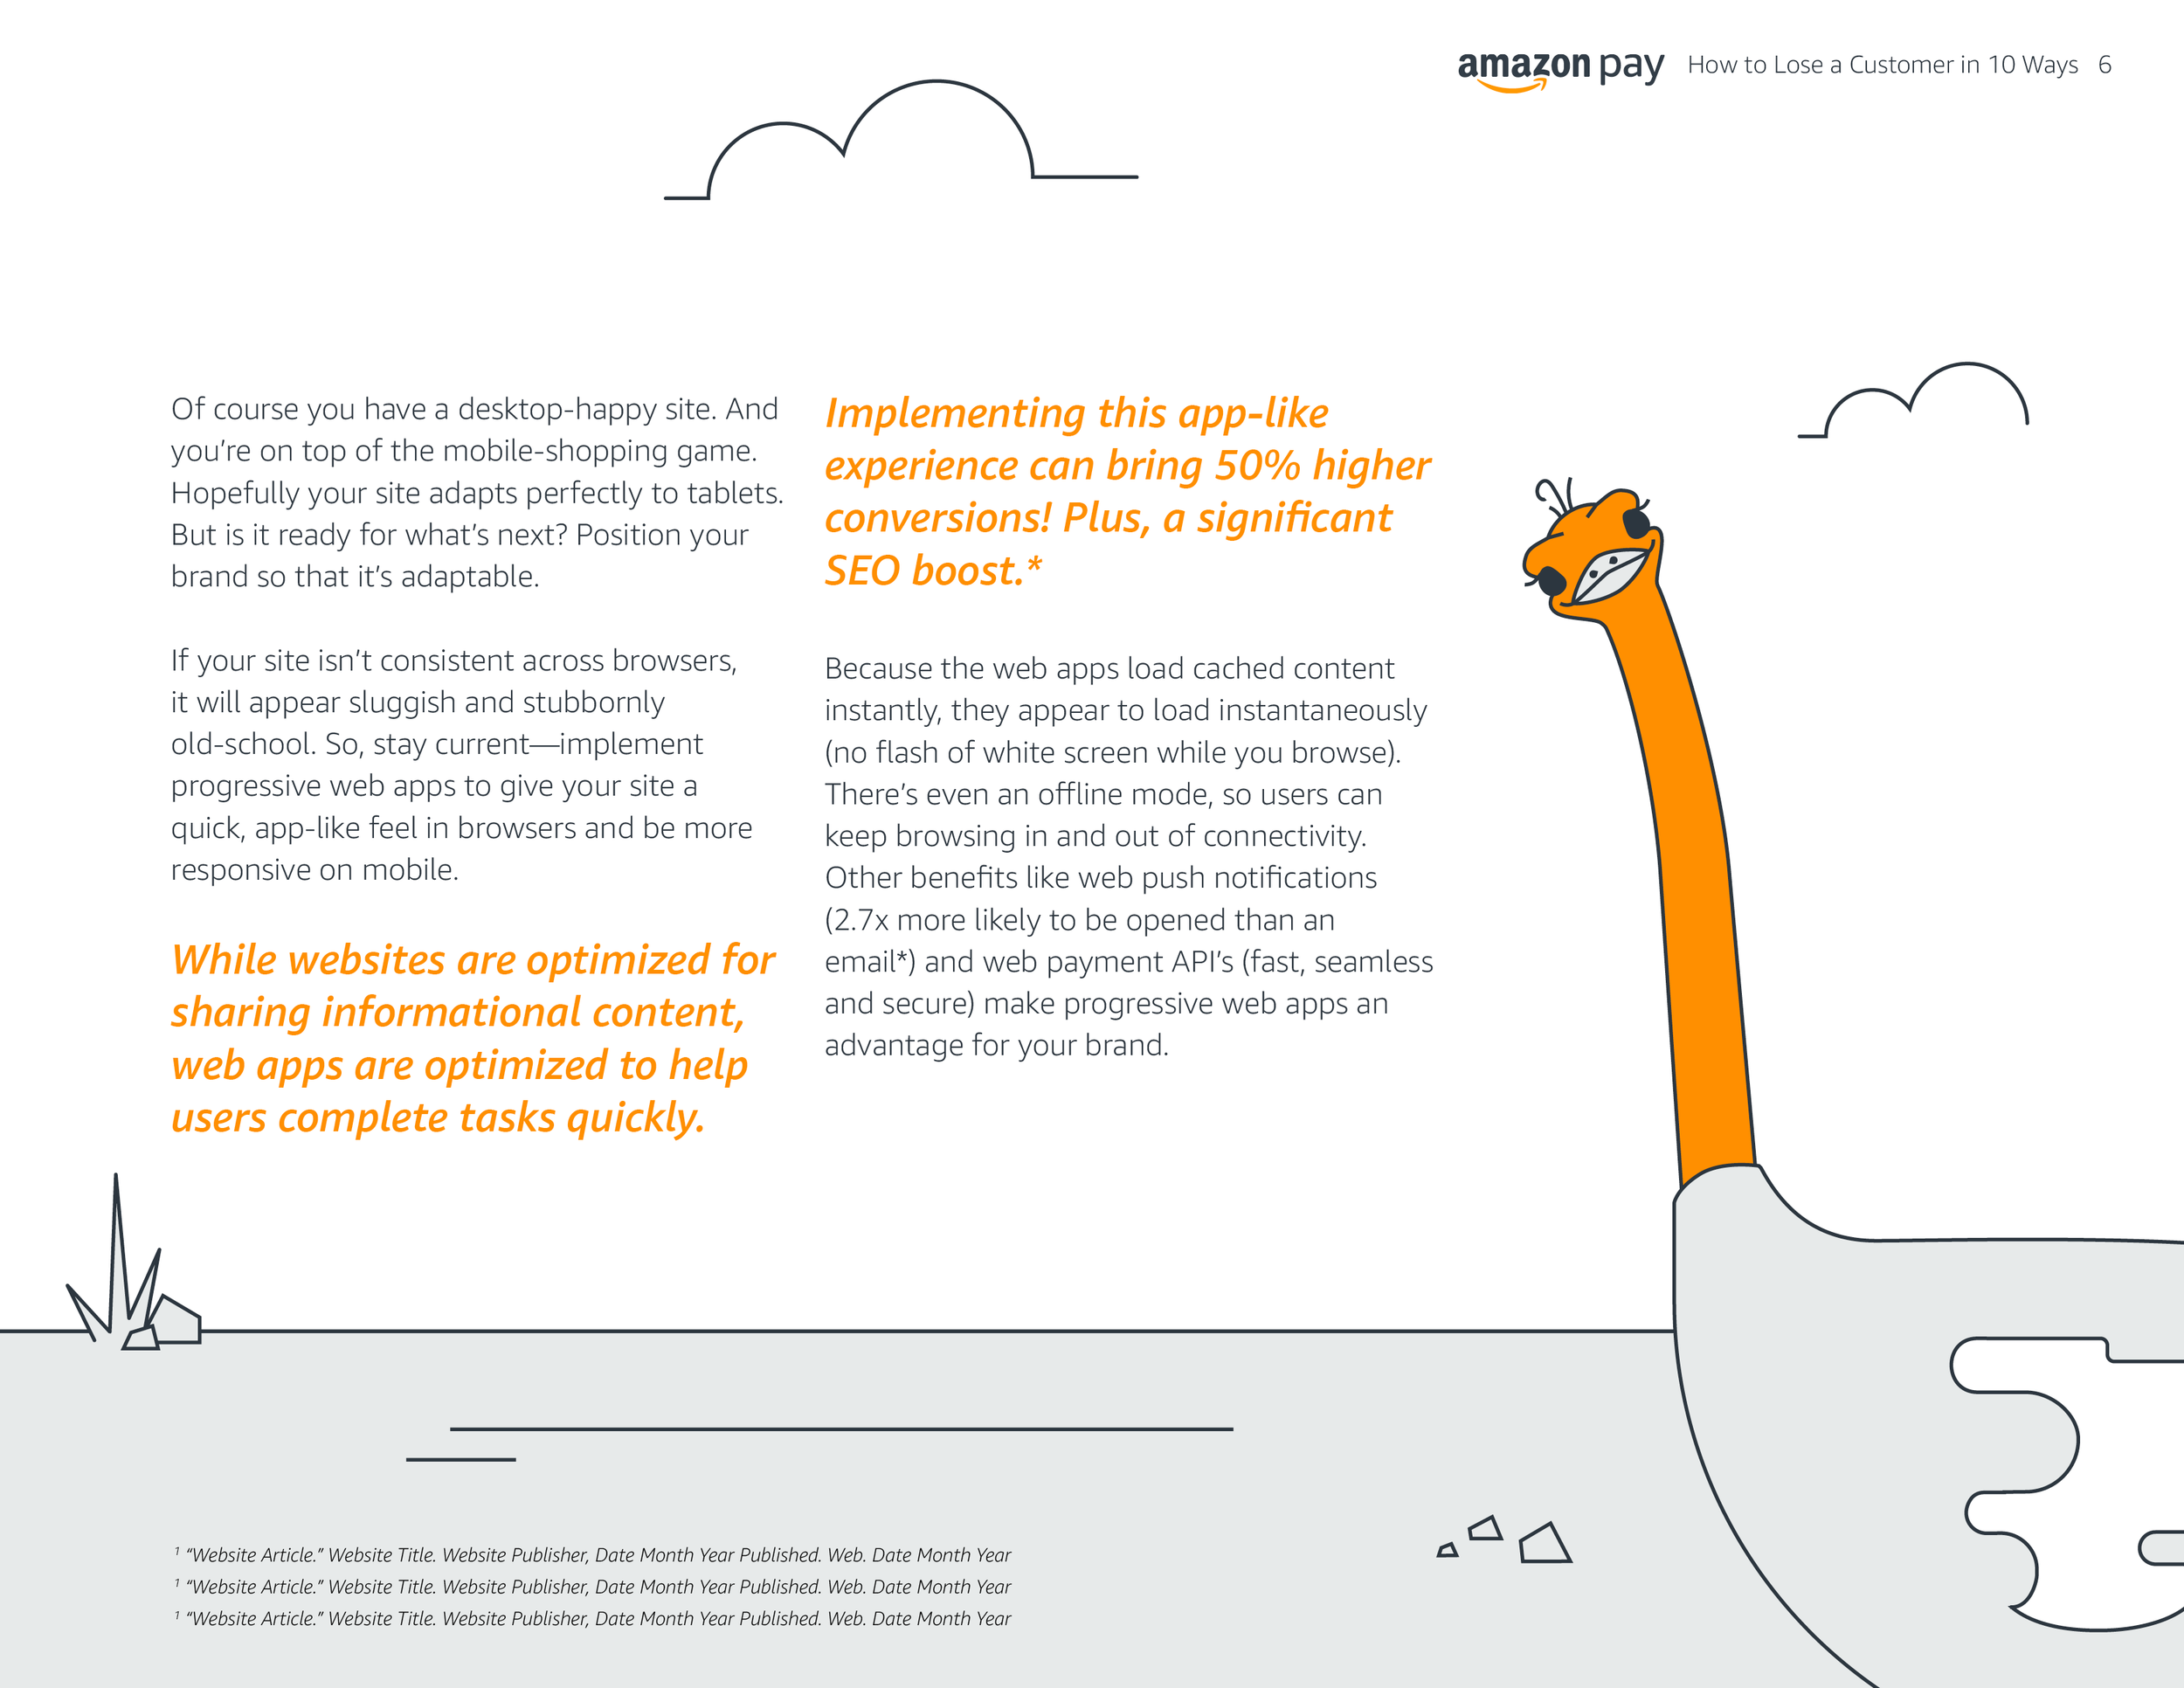 amazon-pay-6.png